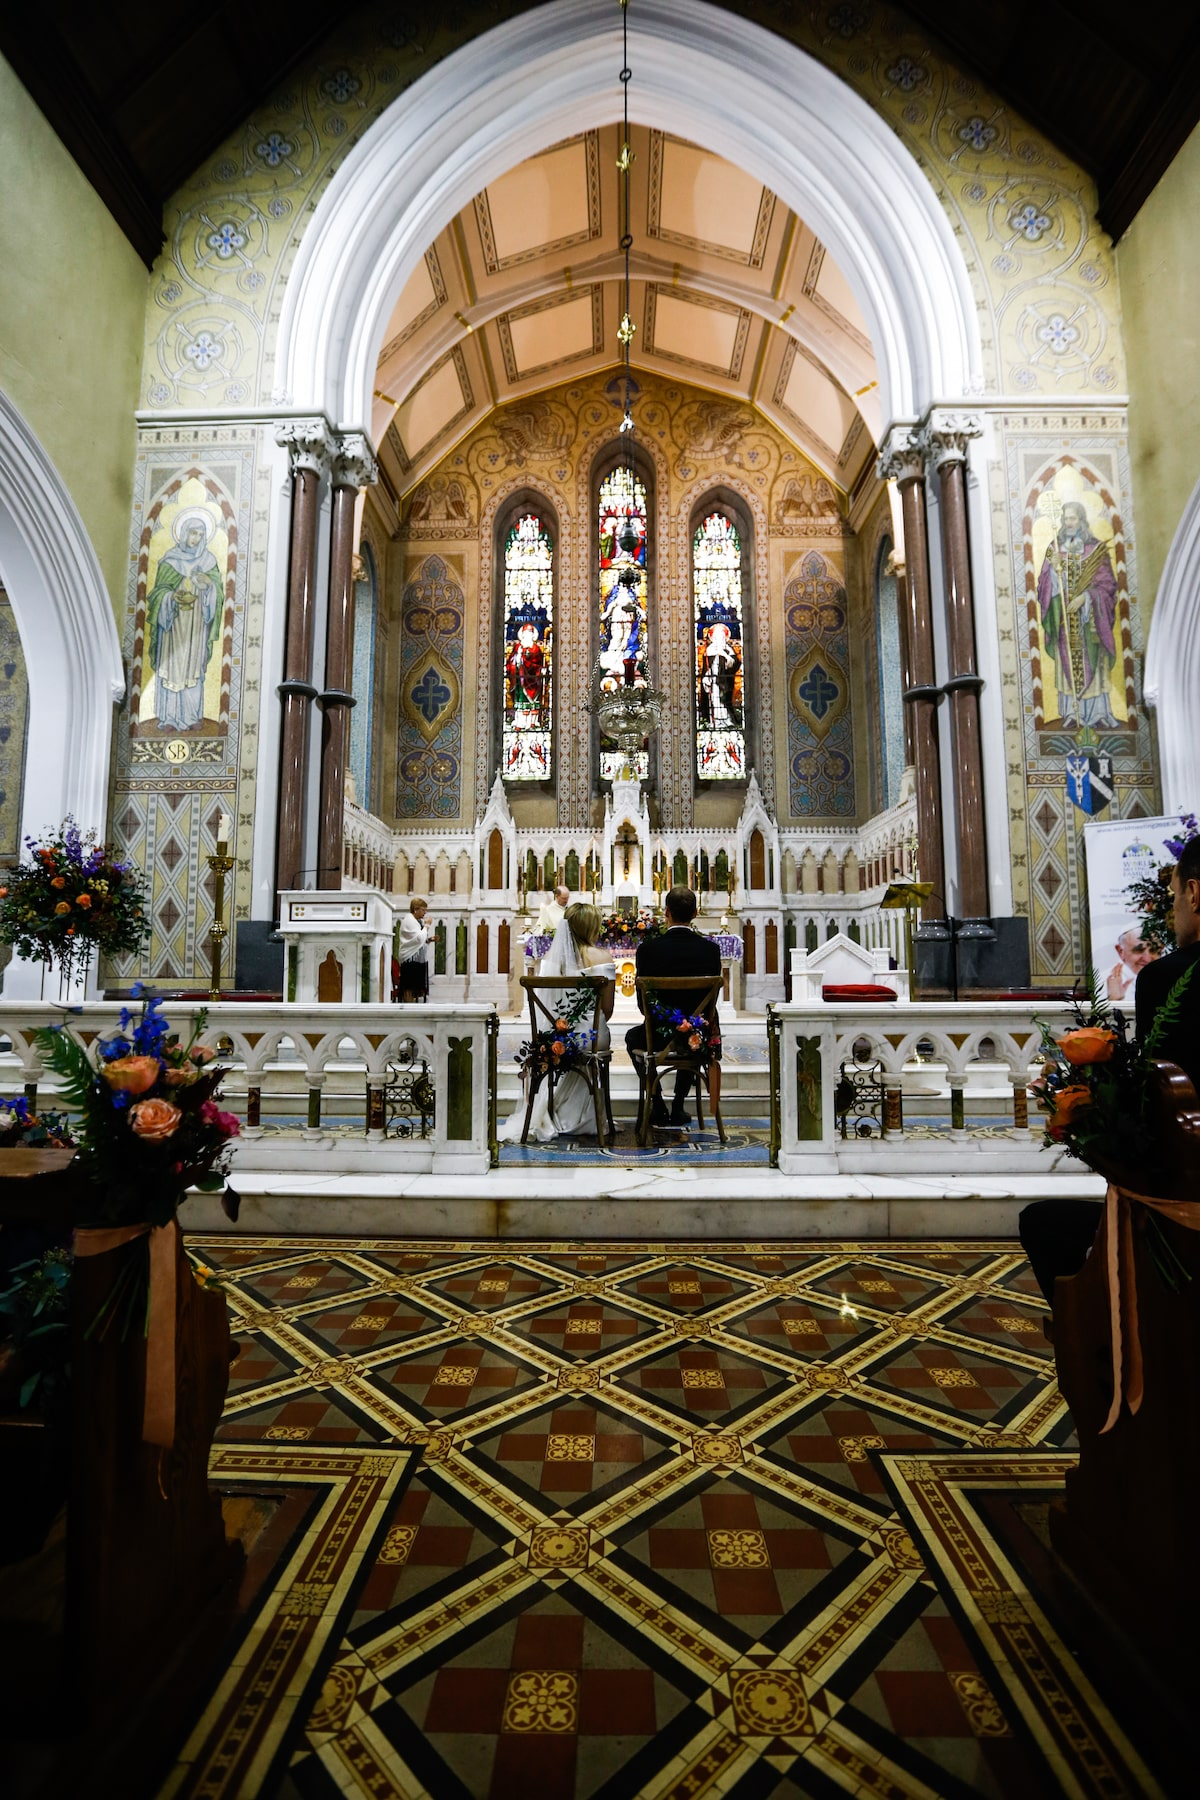 St Brigid's Catholic Church in Oldcastle wedding